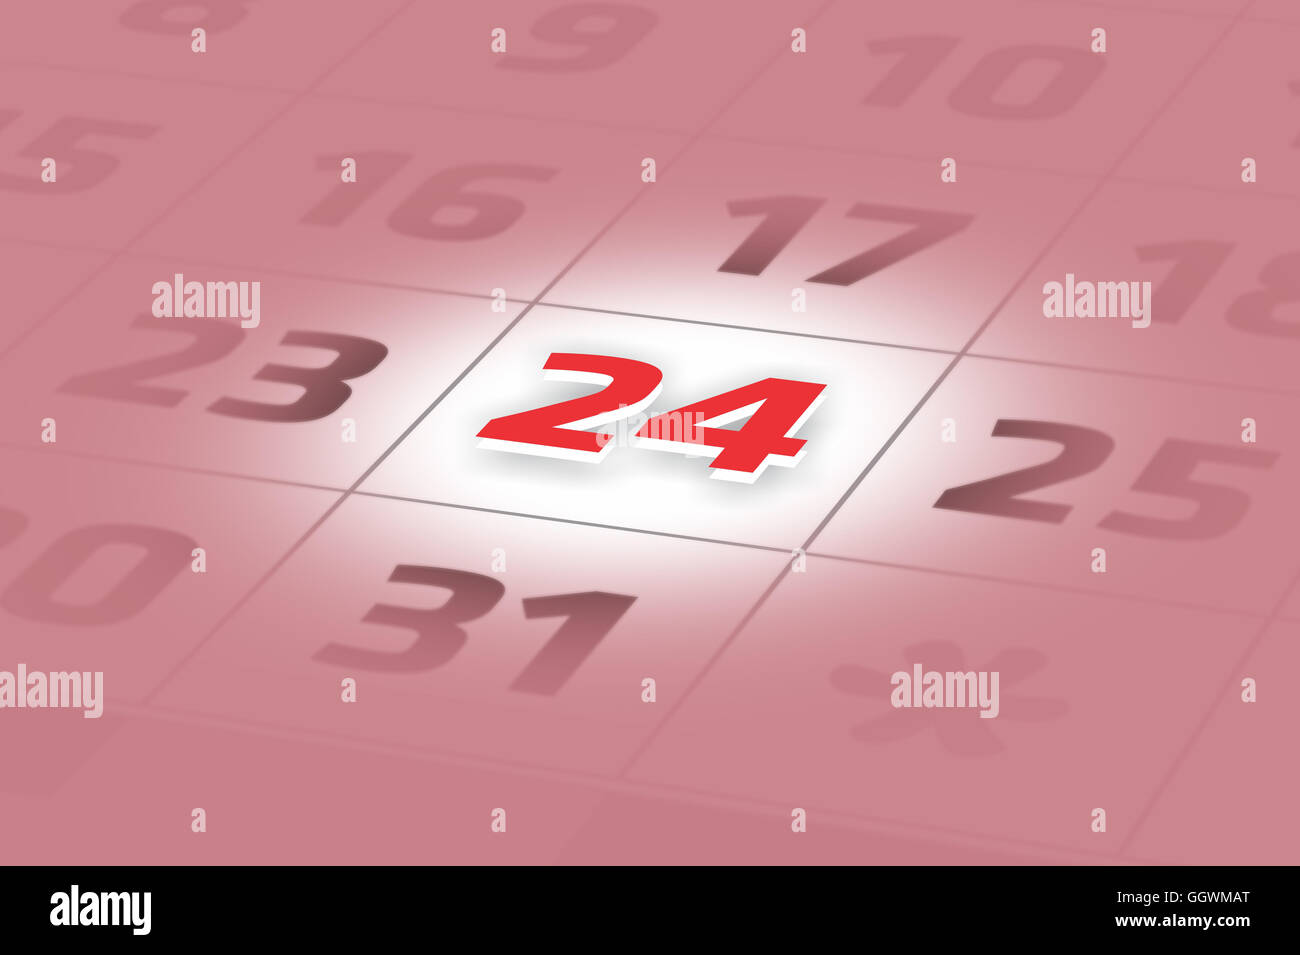 Illustration of calendar with a particular date being differentiated and focused. - Stock Image